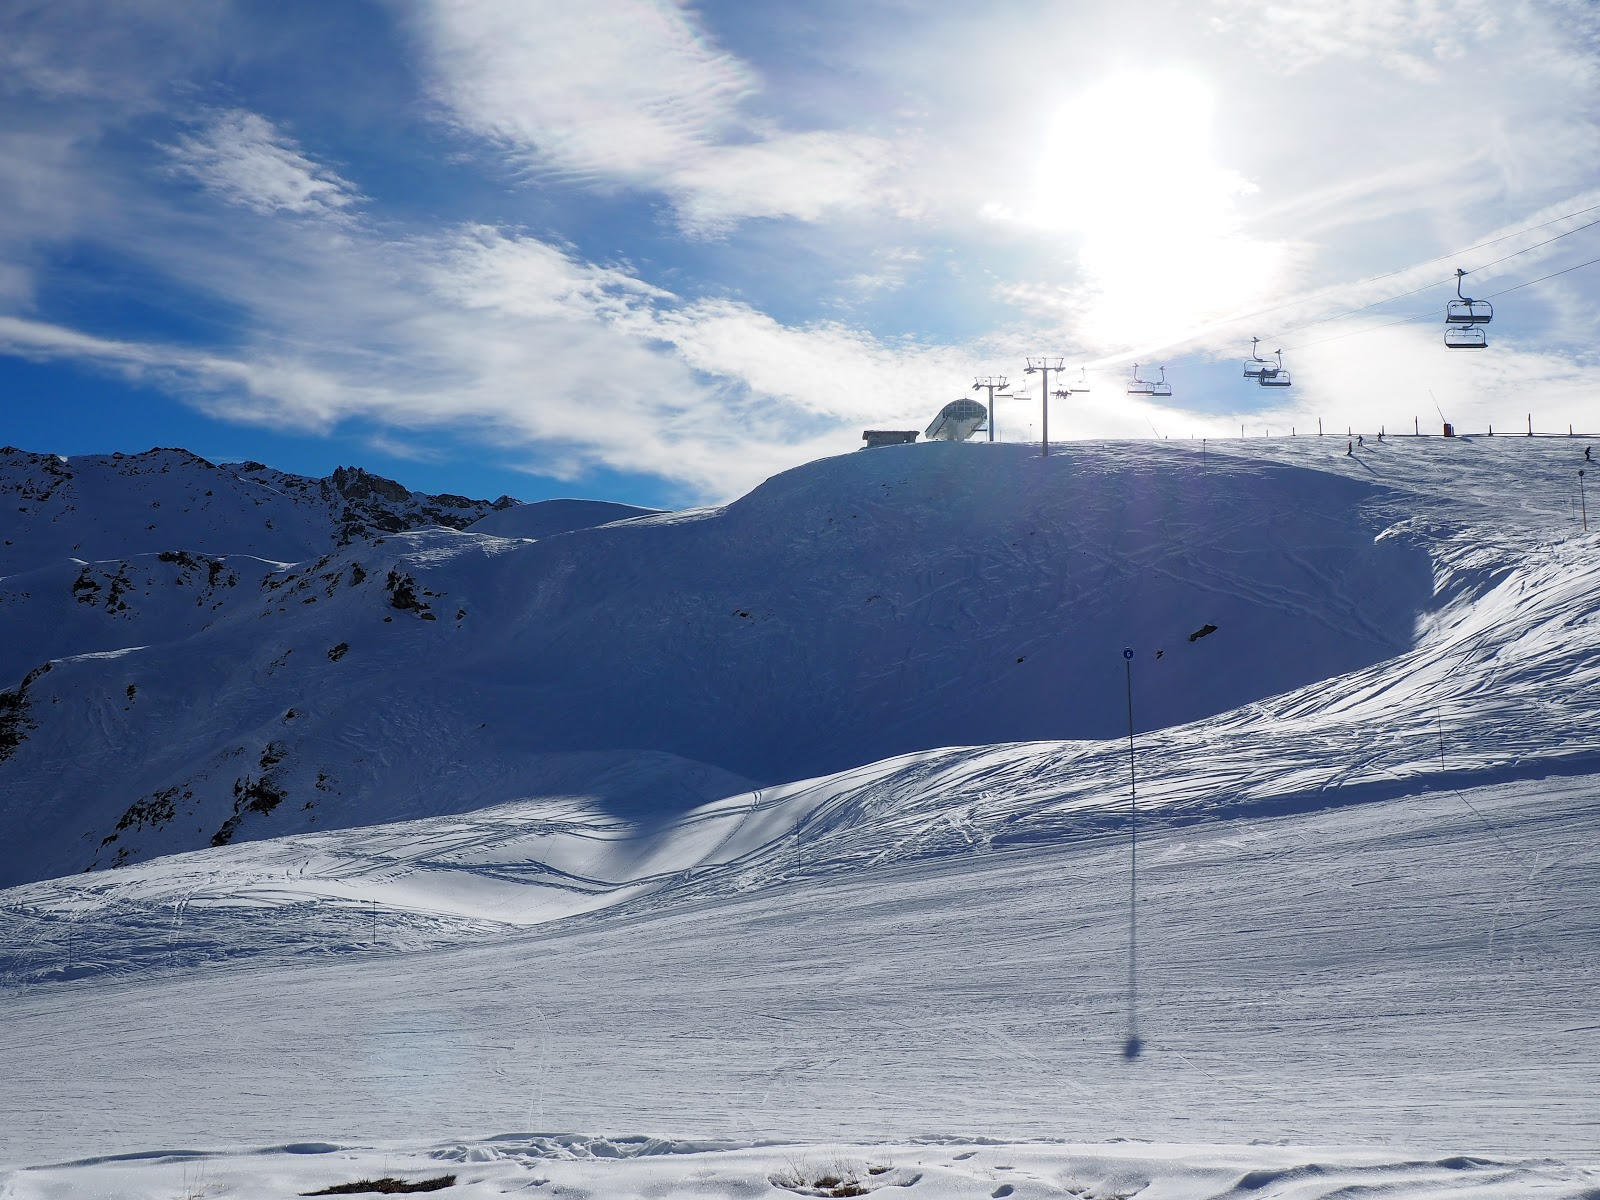 top of a snowy mountain in Val d'isere, France